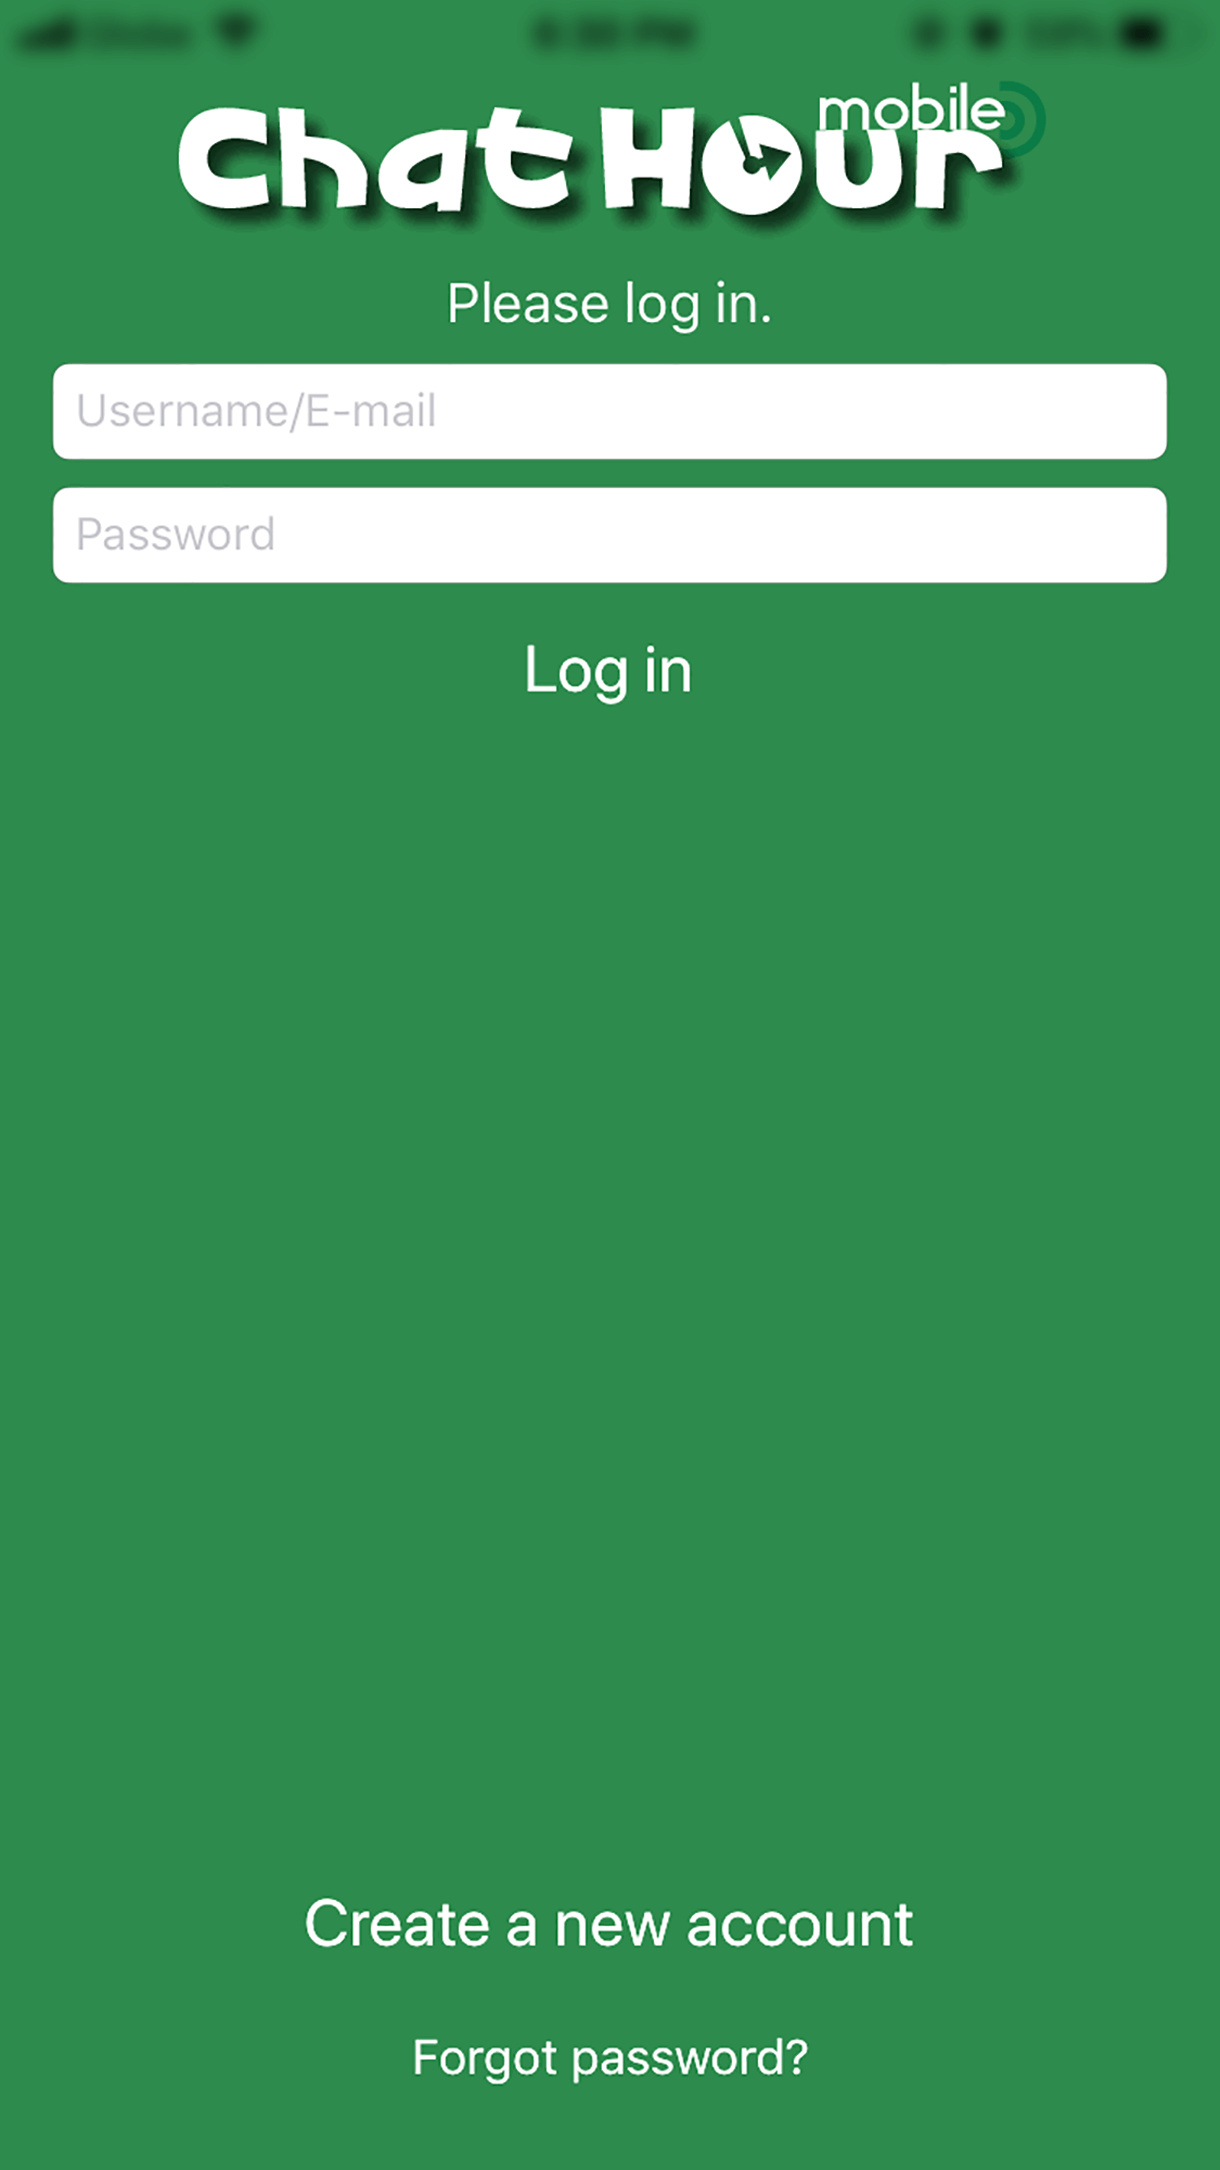 Chat Hour App Login